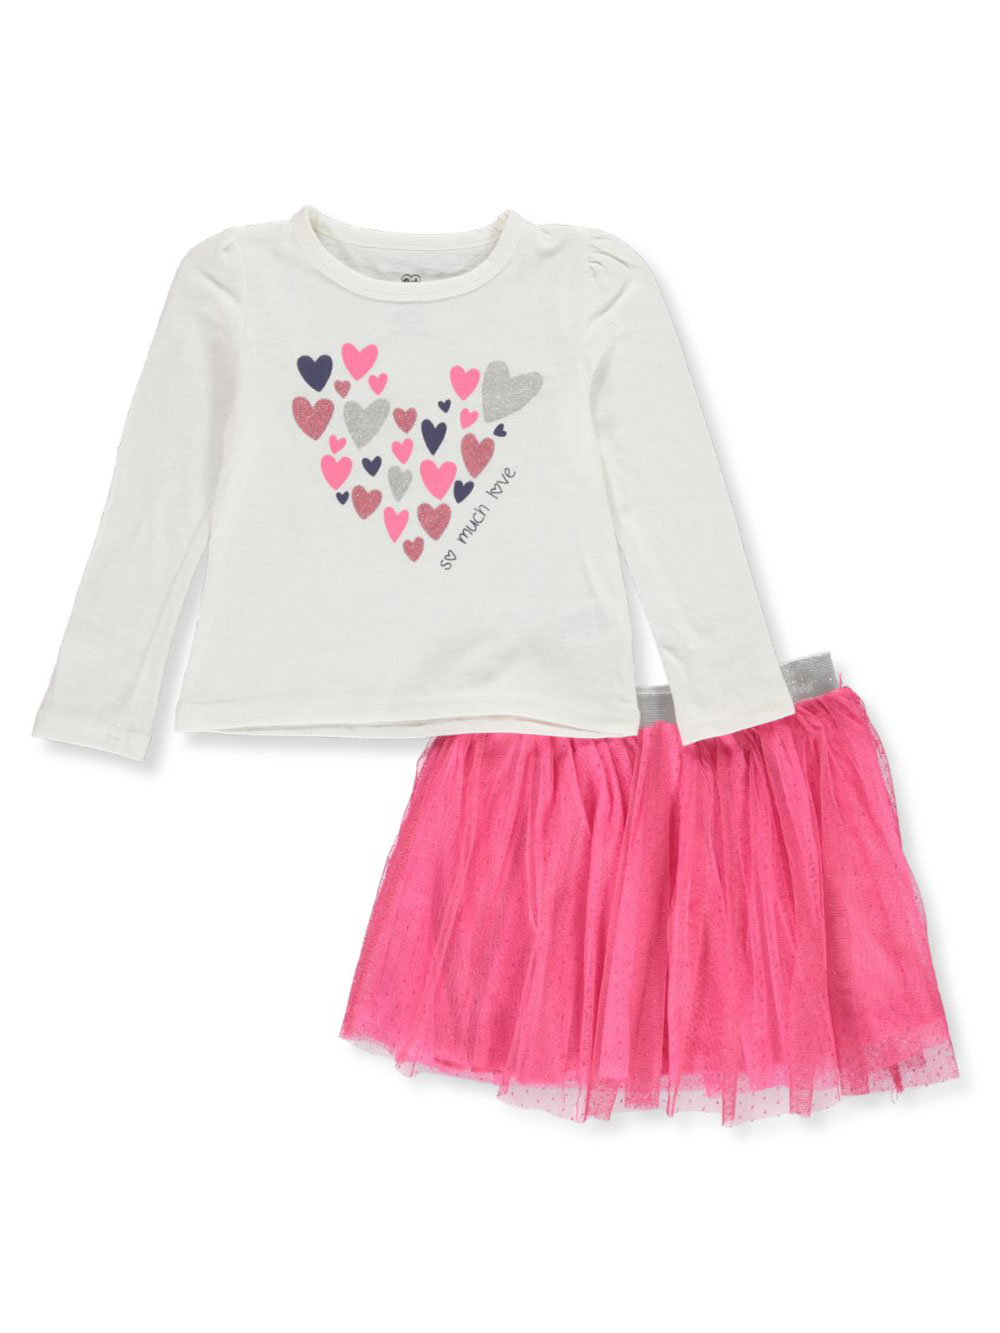 Love 2-Piece Skirt Set Outfit